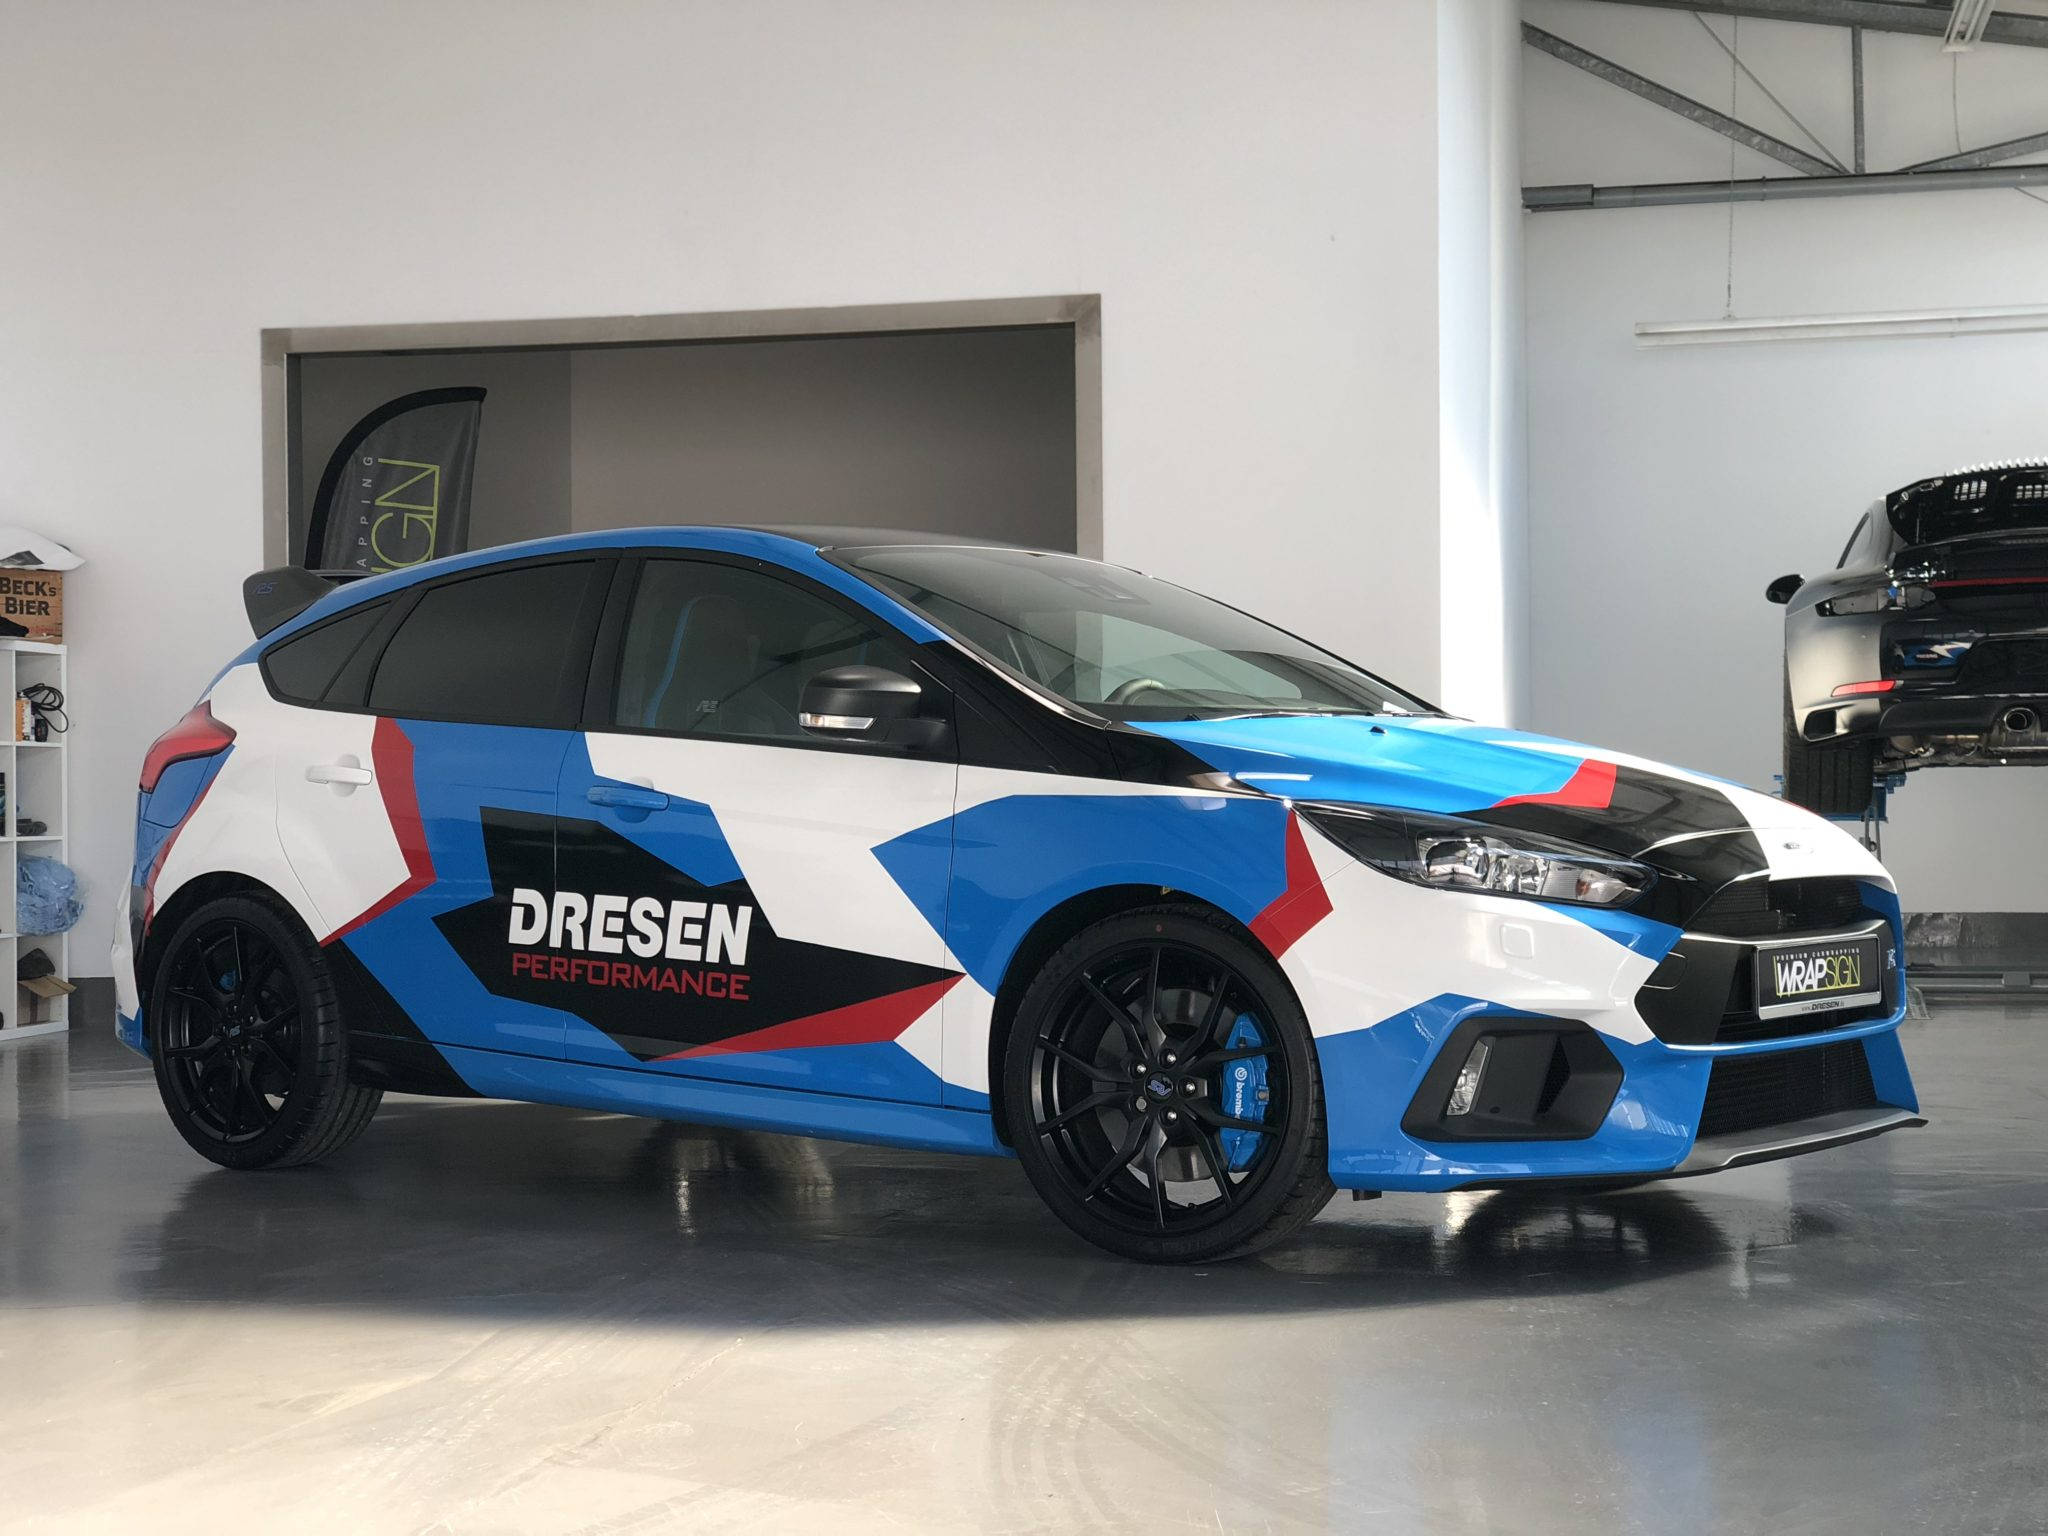 Ford Focus RS im Camouflage Design von Dresen Performance by Wrapsign